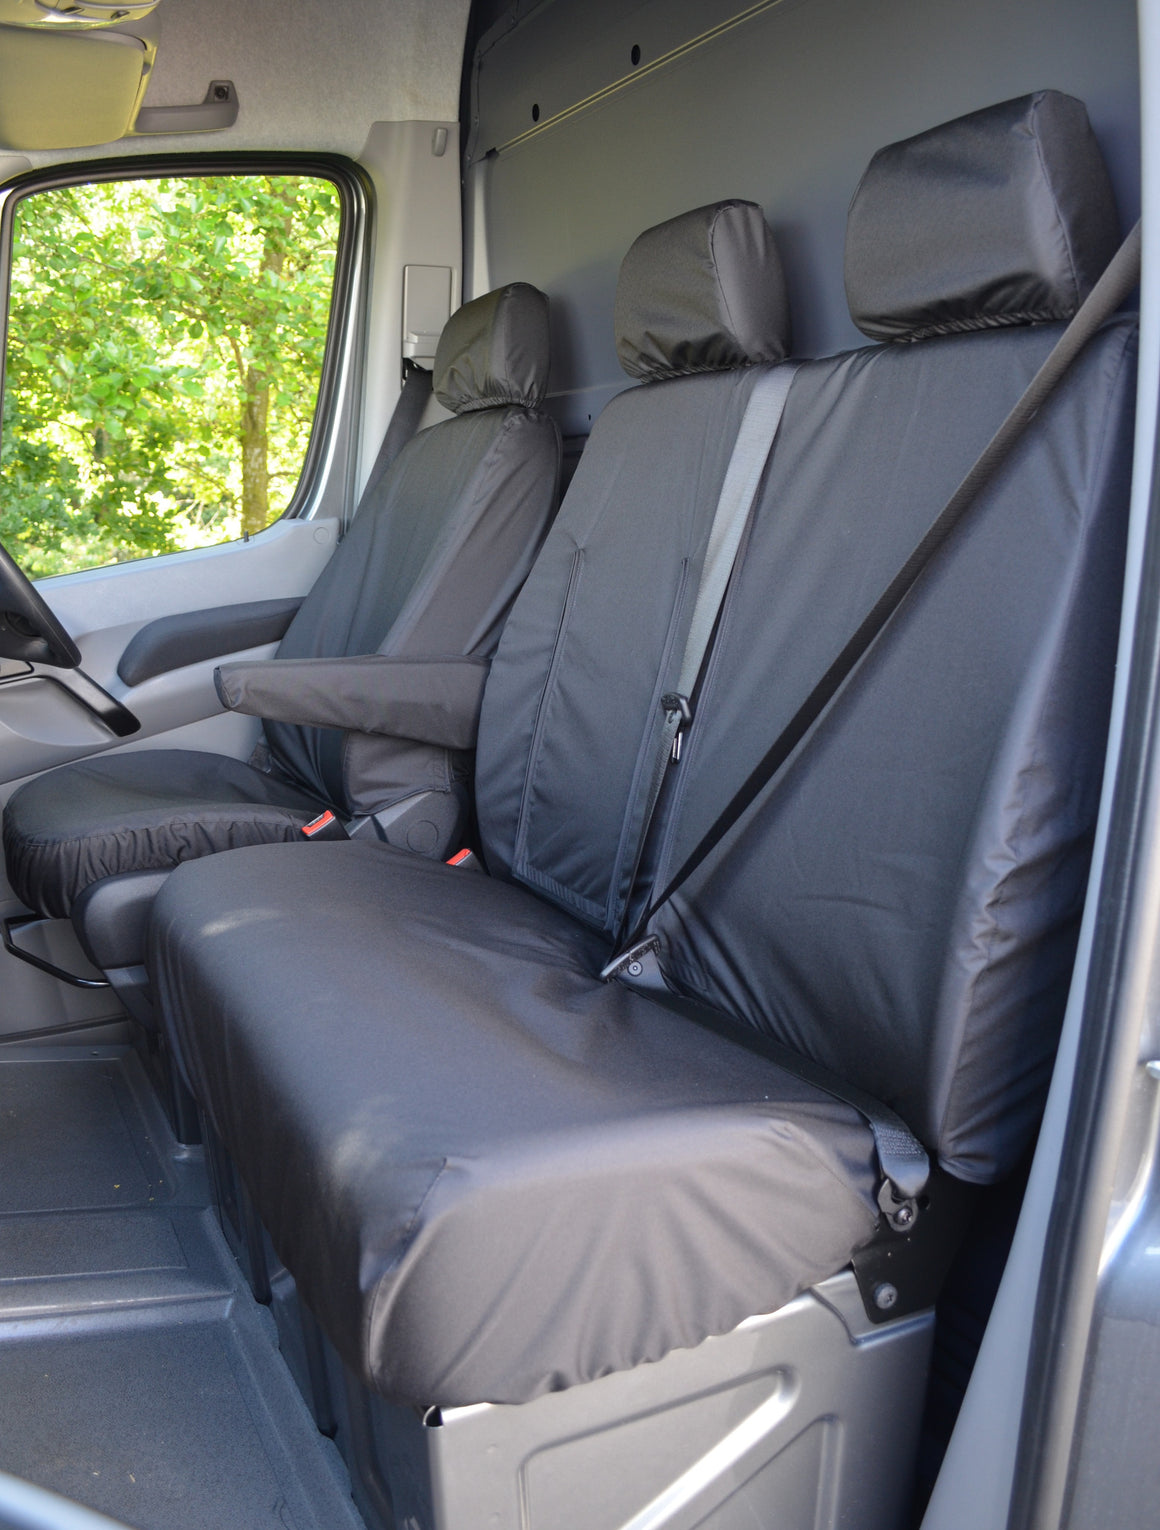 Mercedes Sprinter 2010 - 2018 Van Tailored & Waterproof Seat Covers Black / Front Turtle Covers Ltd